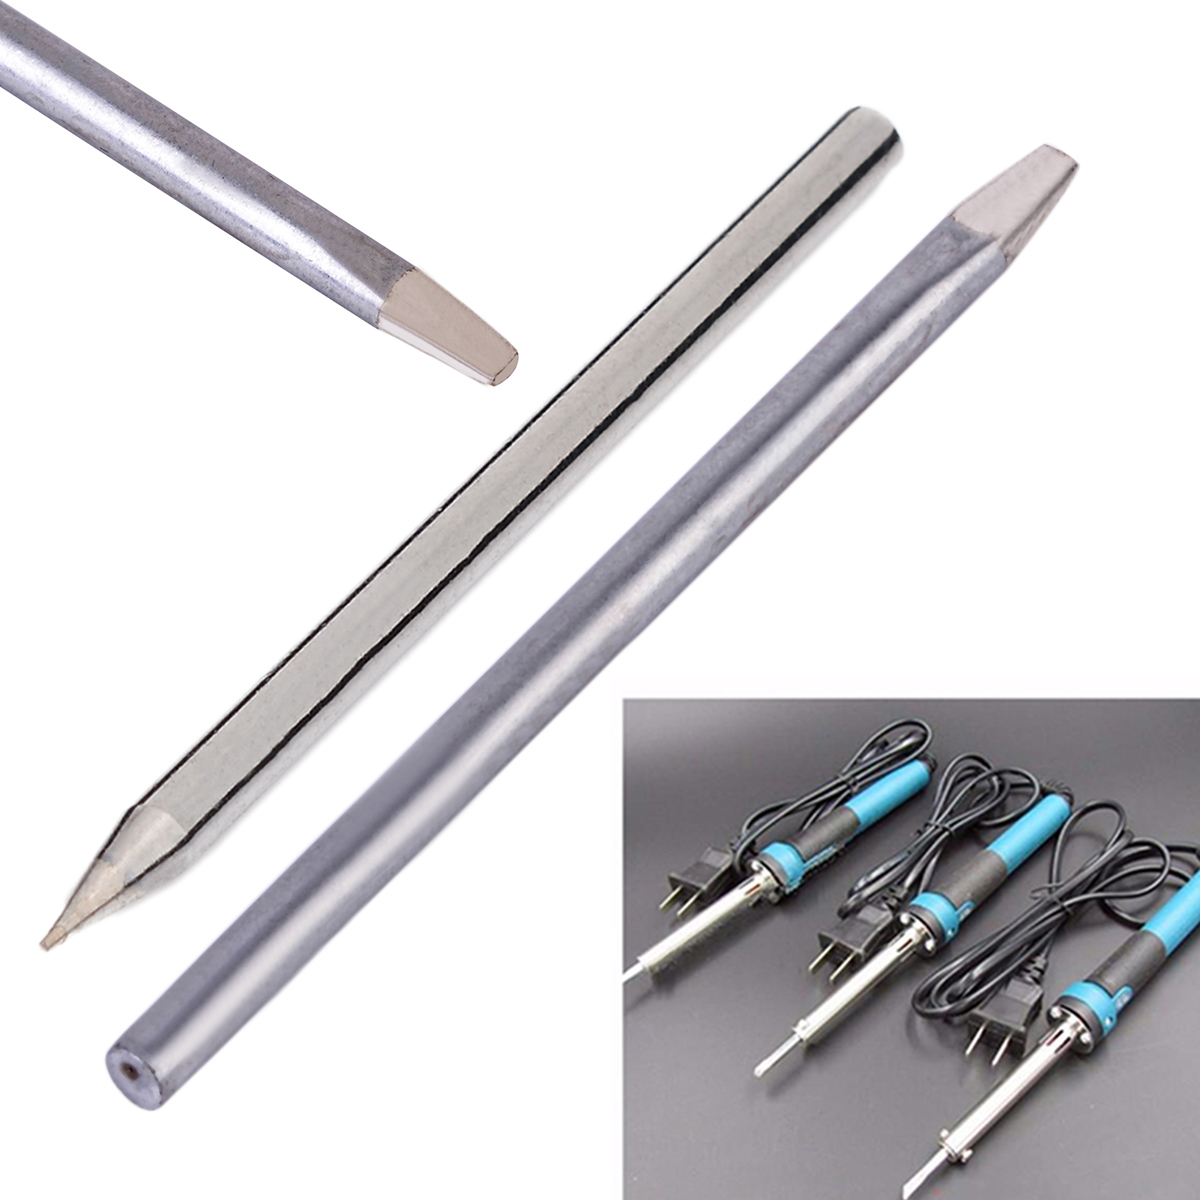 1Pcs Soldering Tip 3.7mm 30W Replaceable Electric Soldering Tools Iron Bit Welder Solder Tips Random Patterns